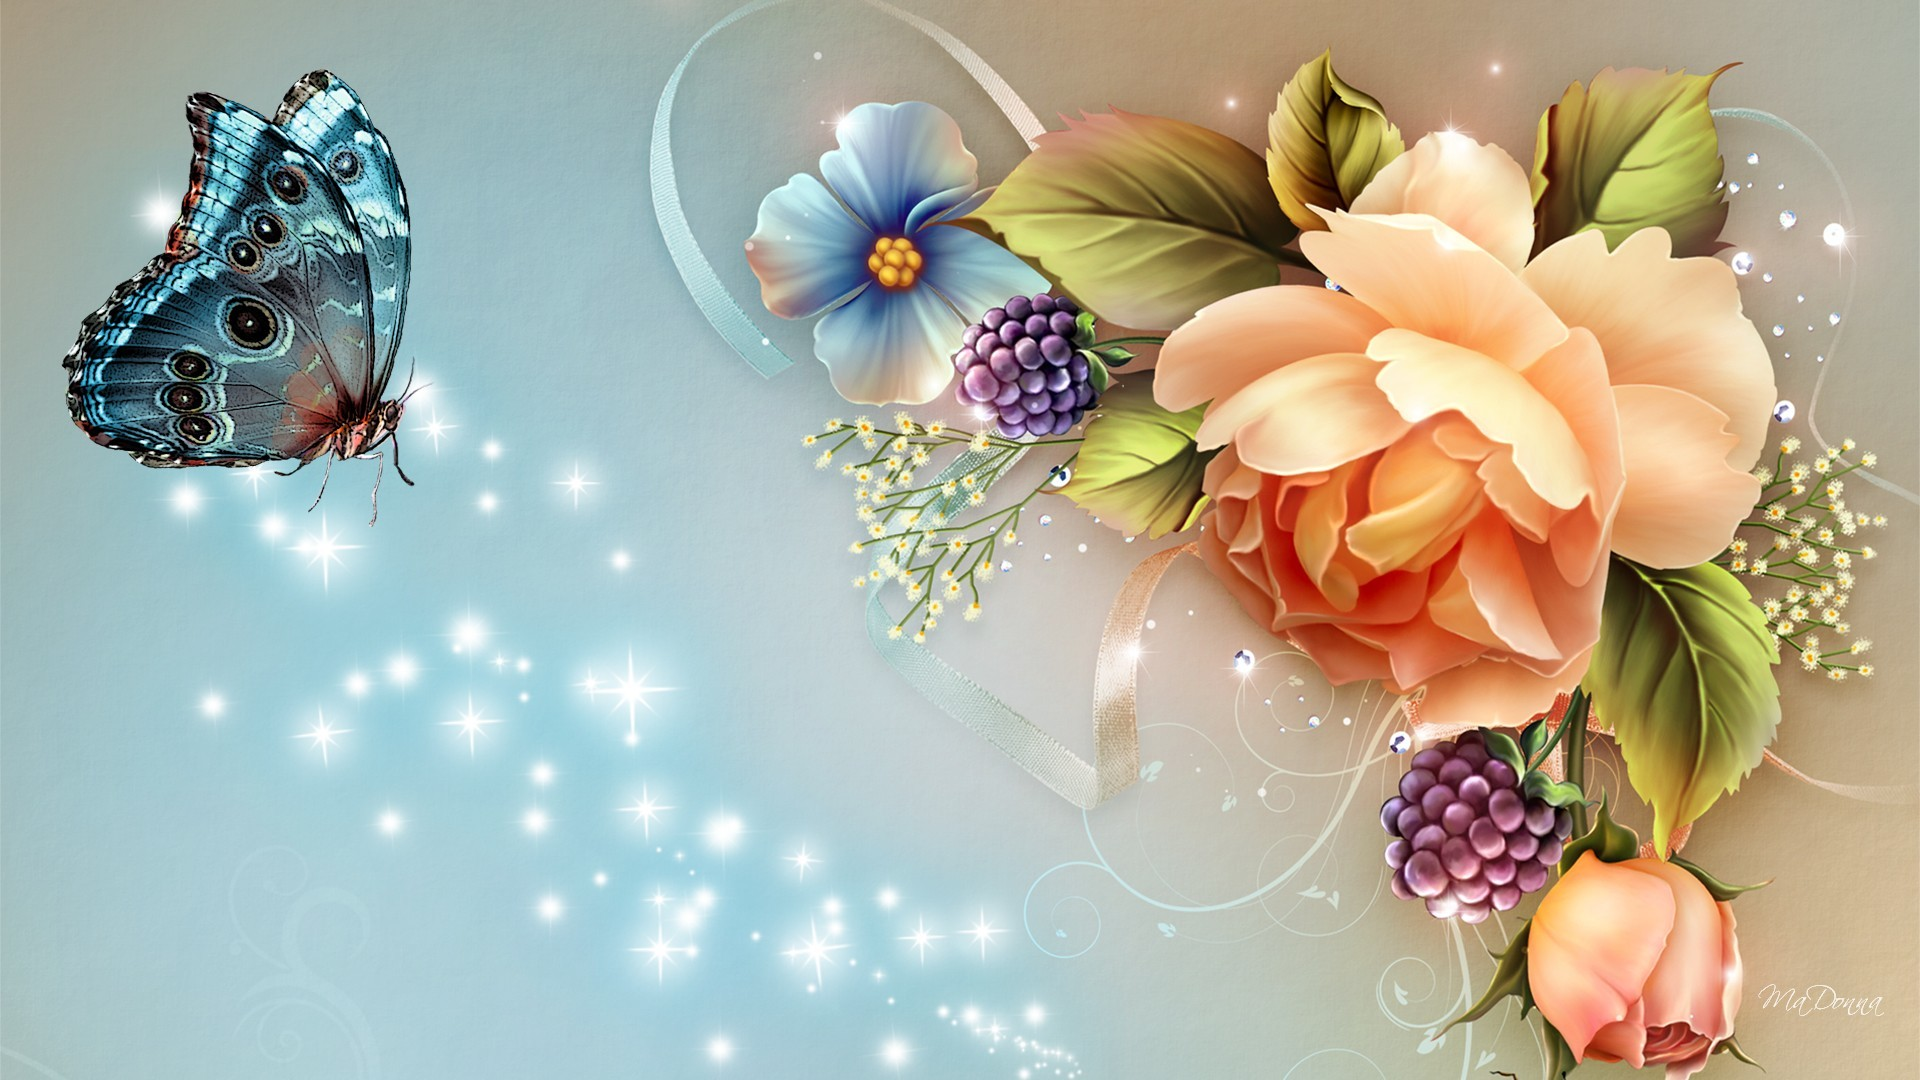 1920x1080 Beautiful Animated Wallpapers for Desktop - WallpaperSafari Computer Wallpaper  Backgrounds 12Jpg ...